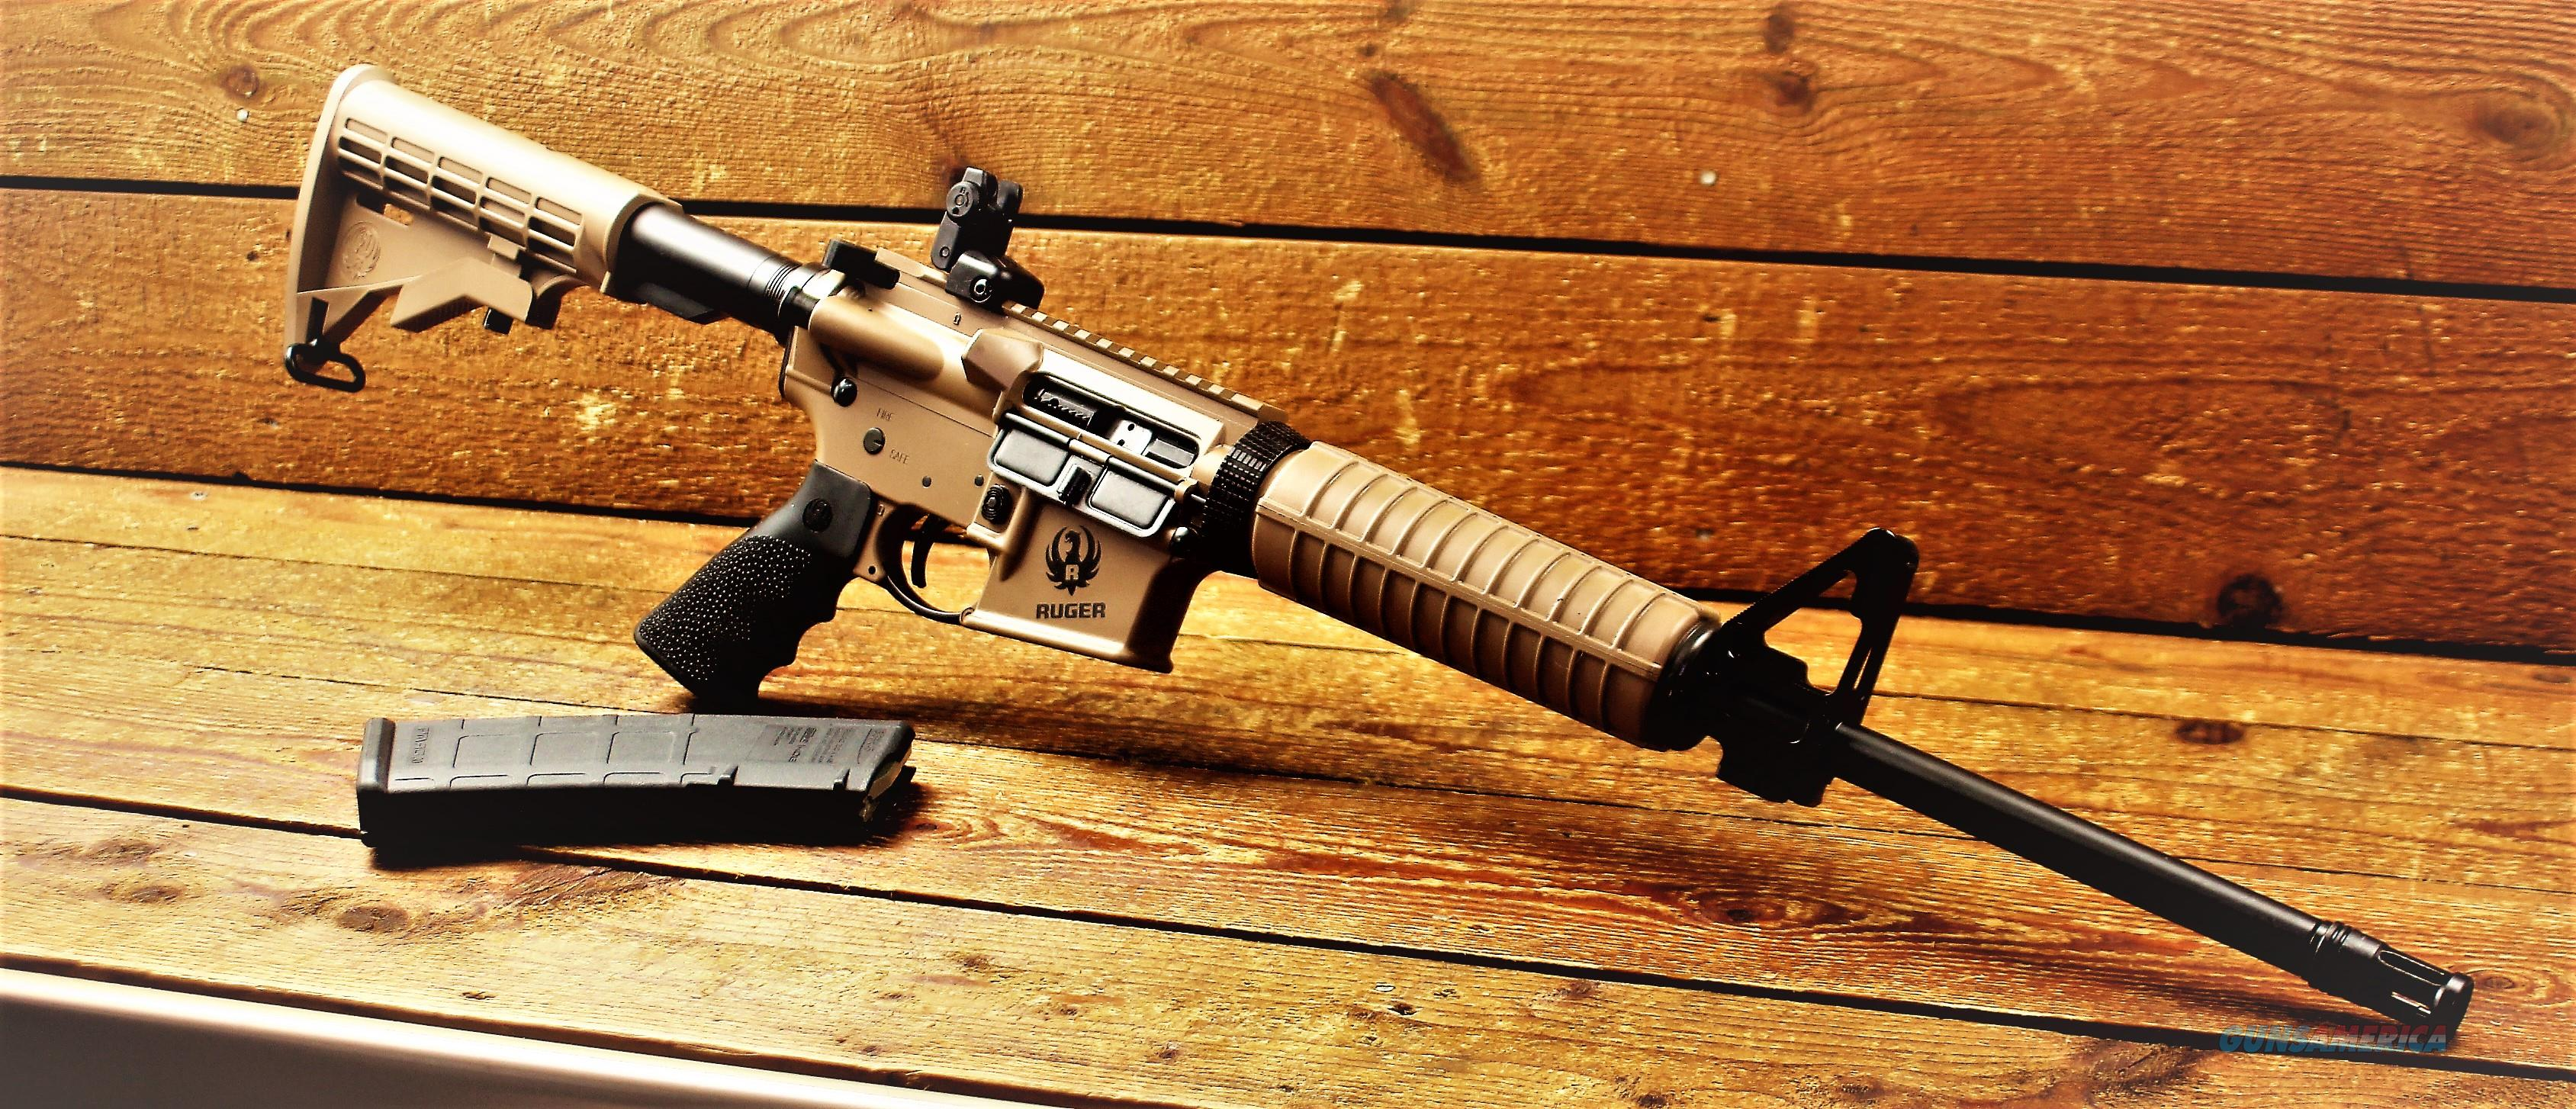 Ruger 8503 AR-556 Rifle 5.56mm 16in 30rd FDE Cerakote Components easy pay $44 layaway   Guns > Rifles > Ruger Rifles > SR Series